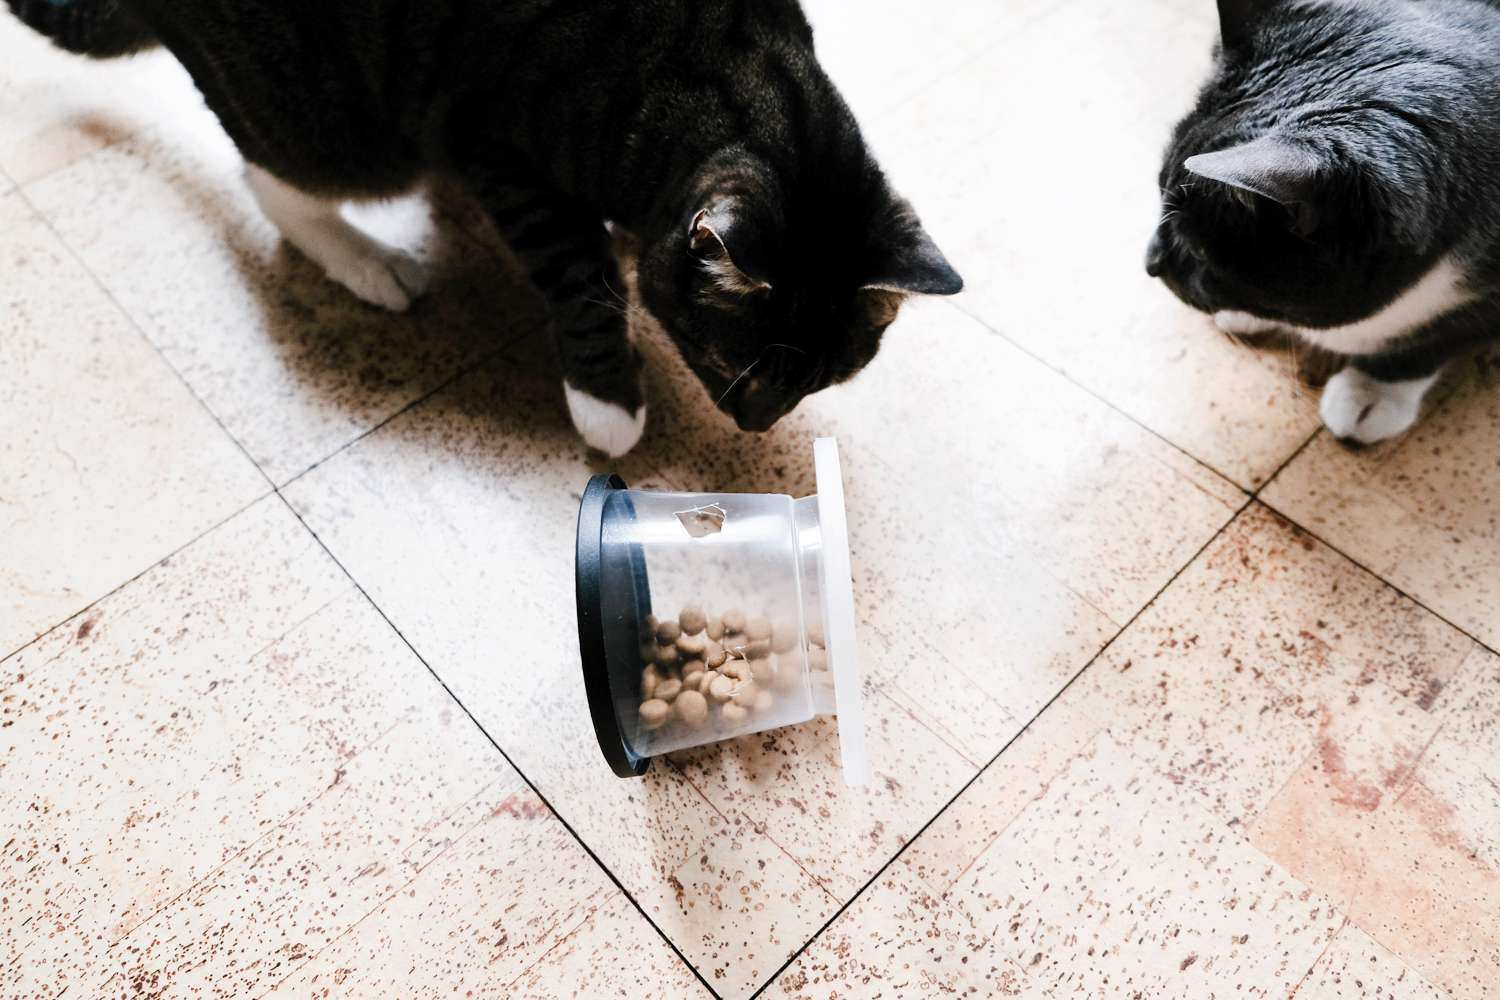 two kitties play with DIY wheel feeder made out of recycled plastic containers